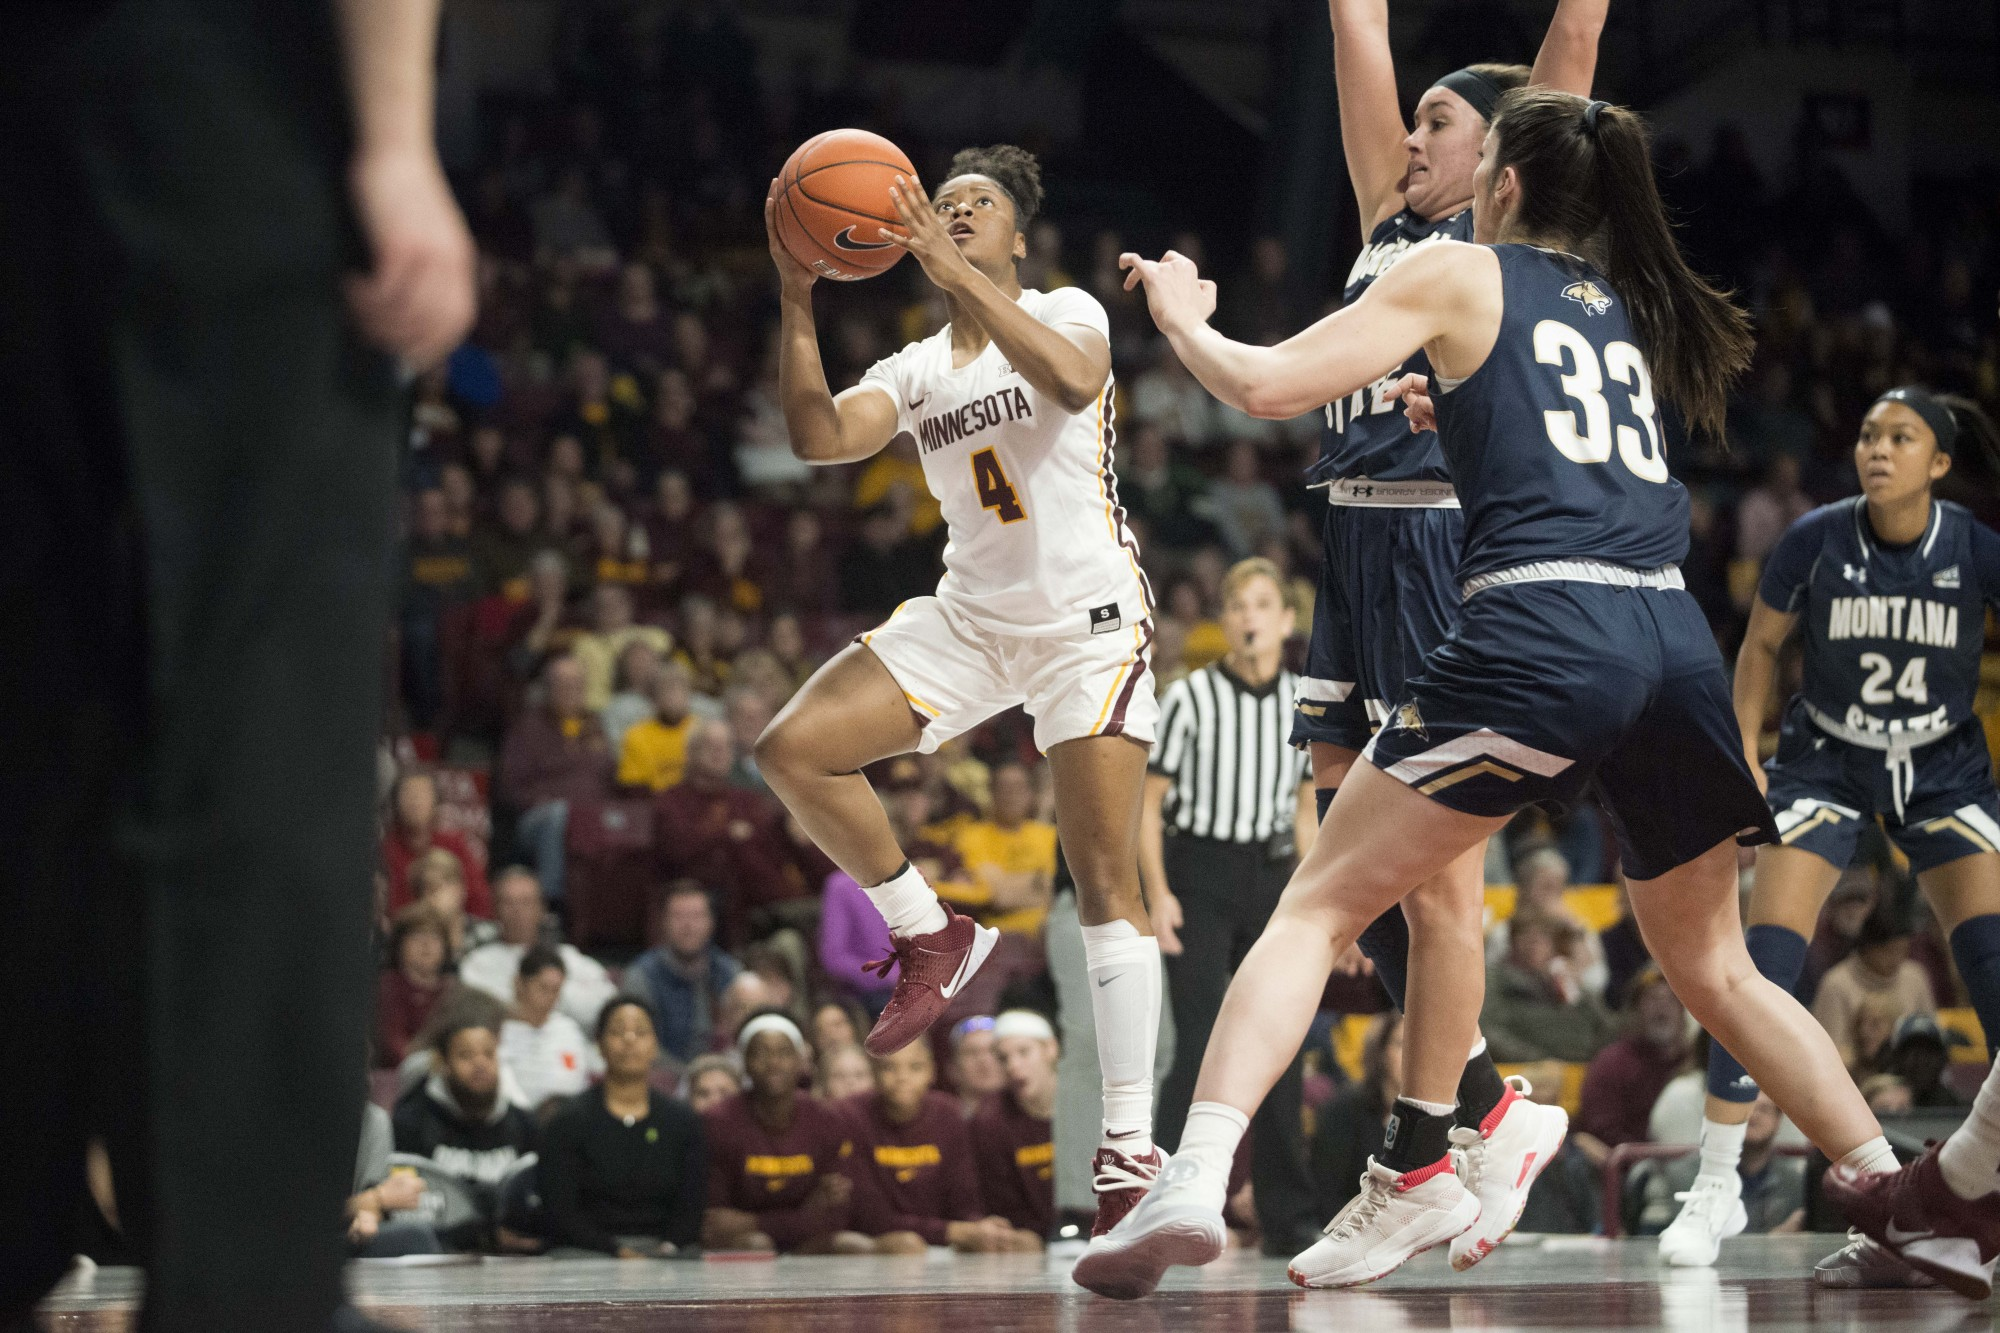 Guard Jasmine Powell attempts a layup in Williams Arena on Saturday, Nov. 23. The Gophers went on to defeat Montana State 71-60.